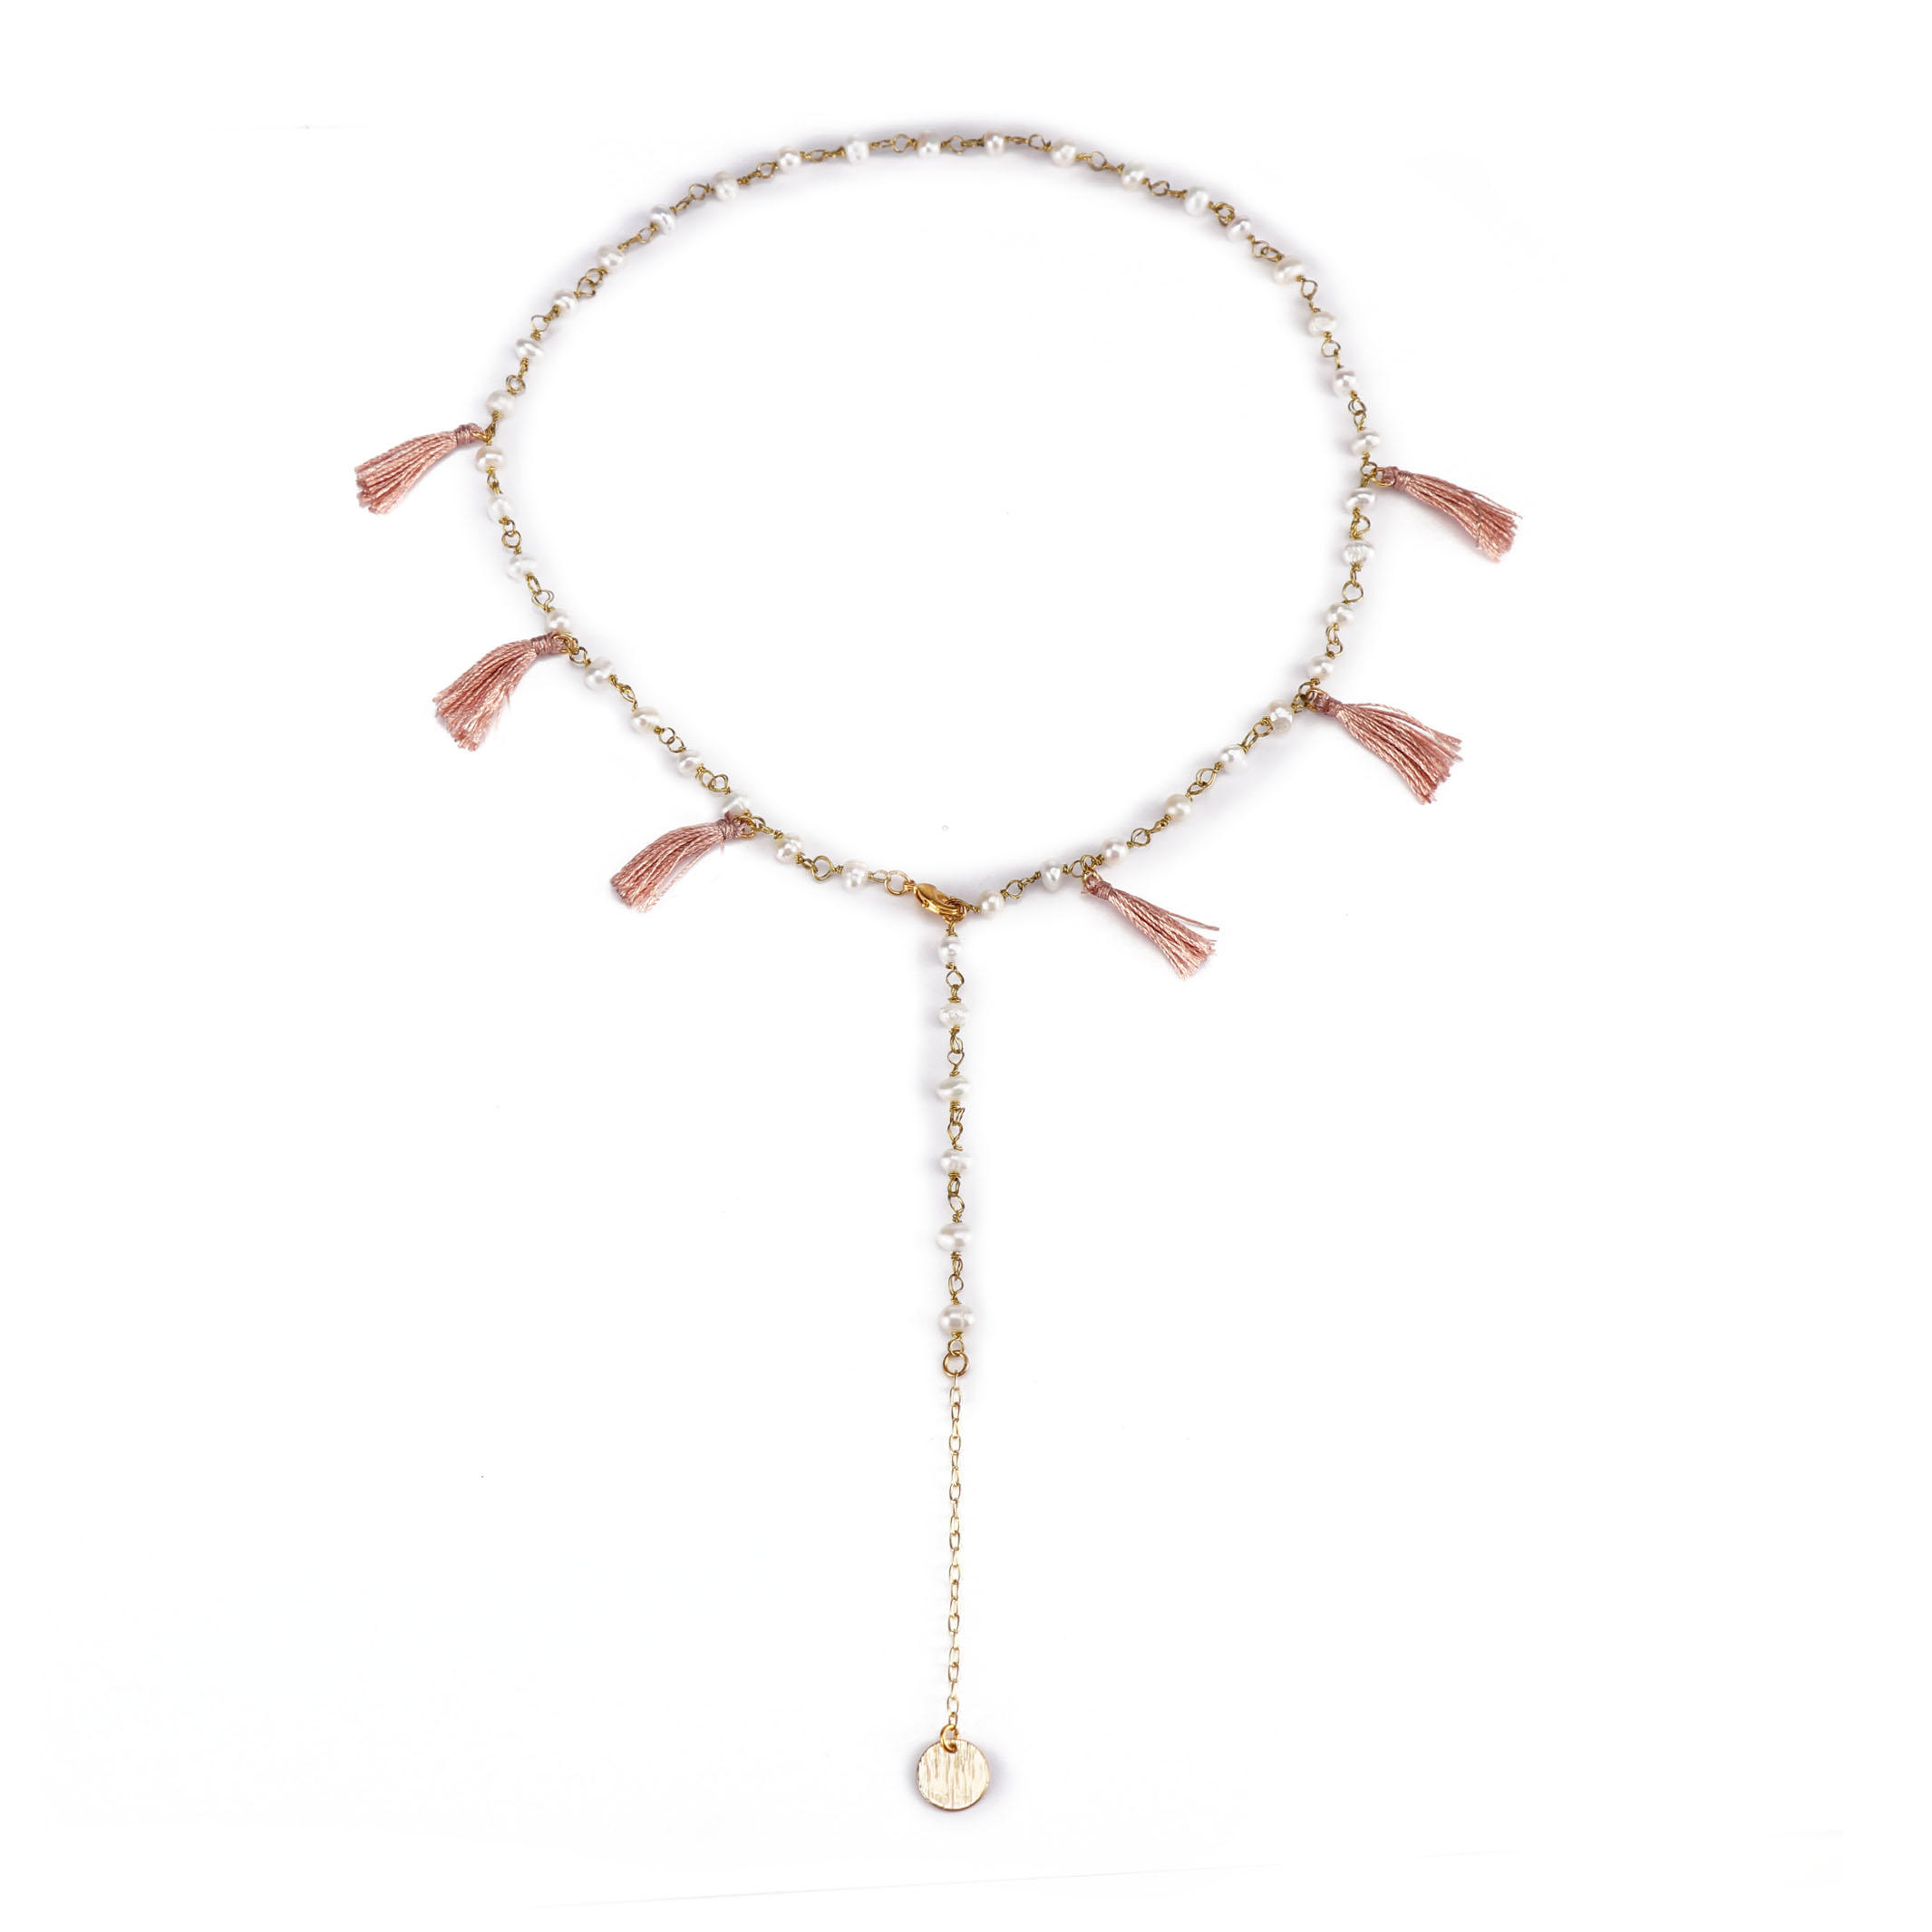 trustworthy crystal choker necklace tassel inquire now for gift-2